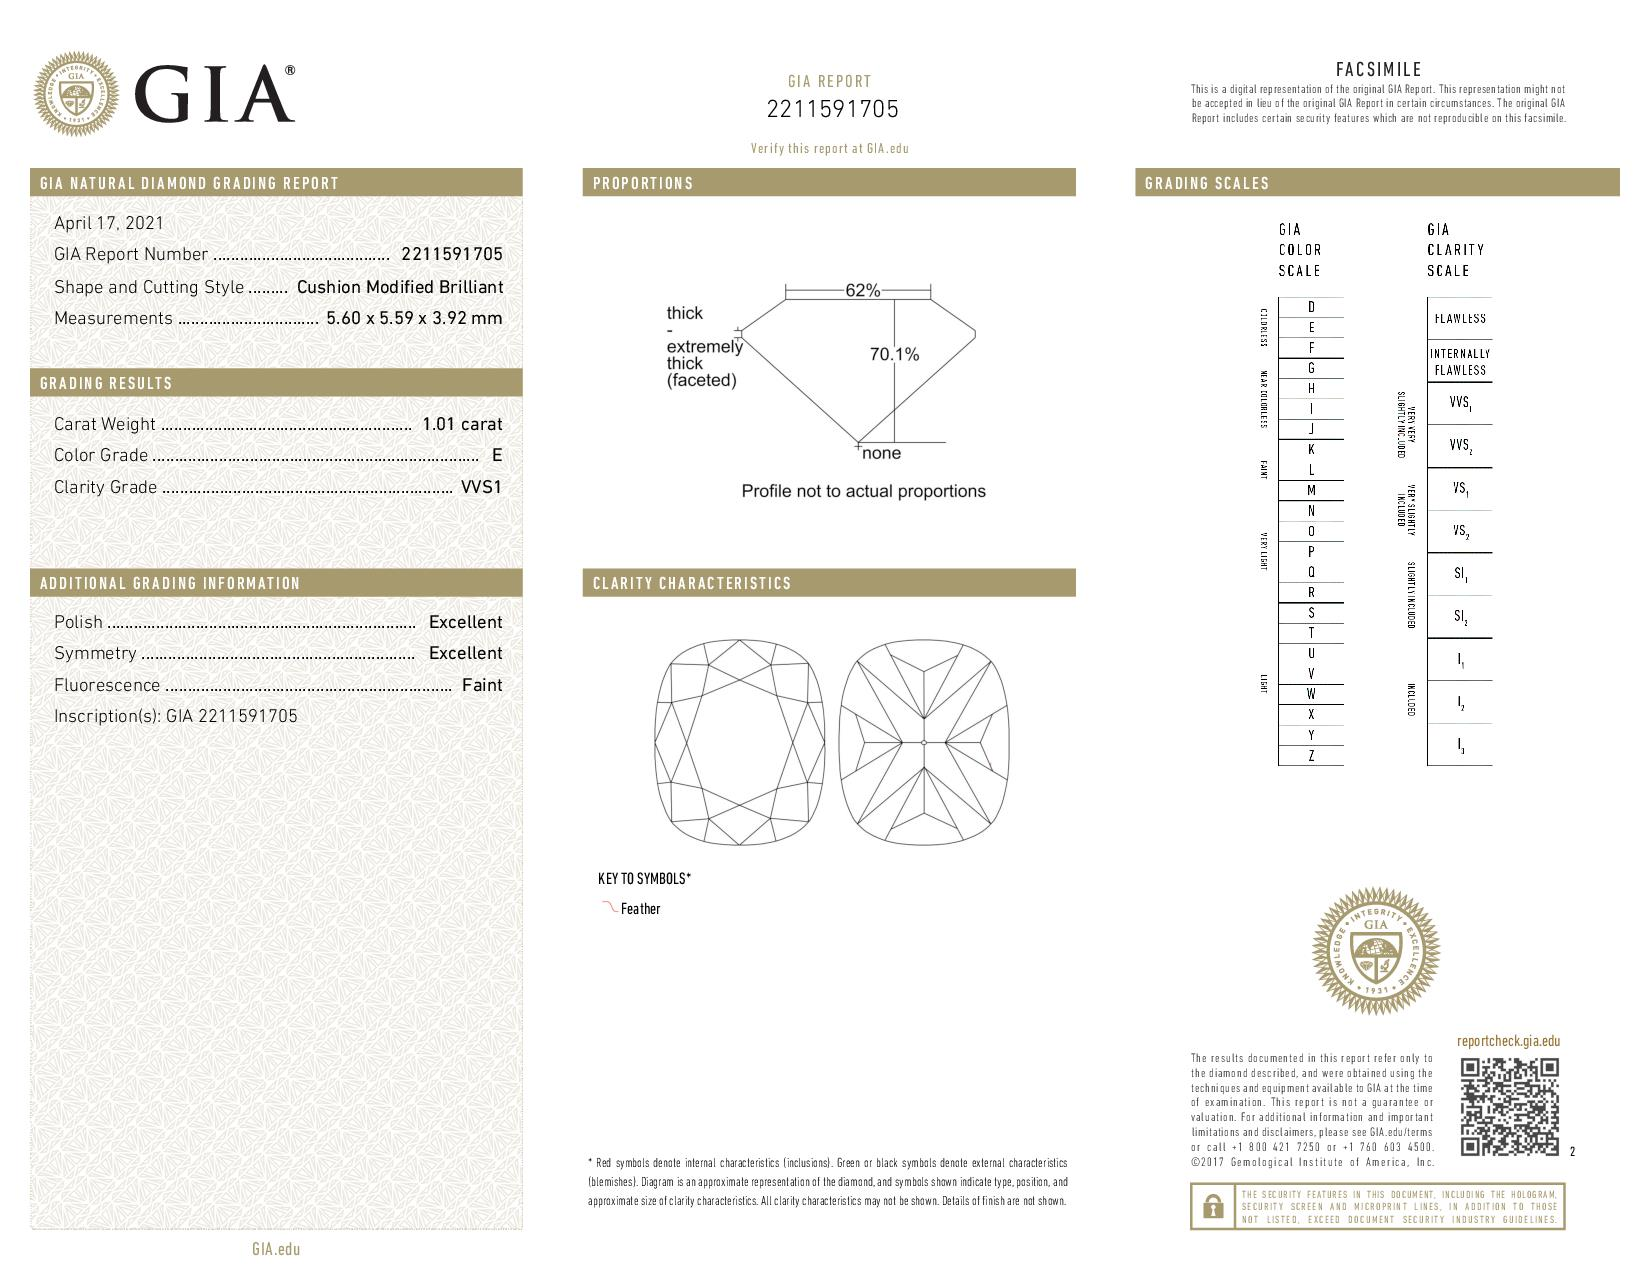 This is a 1.01 carat cushion shape, E color, VVS1 clarity natural diamond accompanied by a GIA grading report.